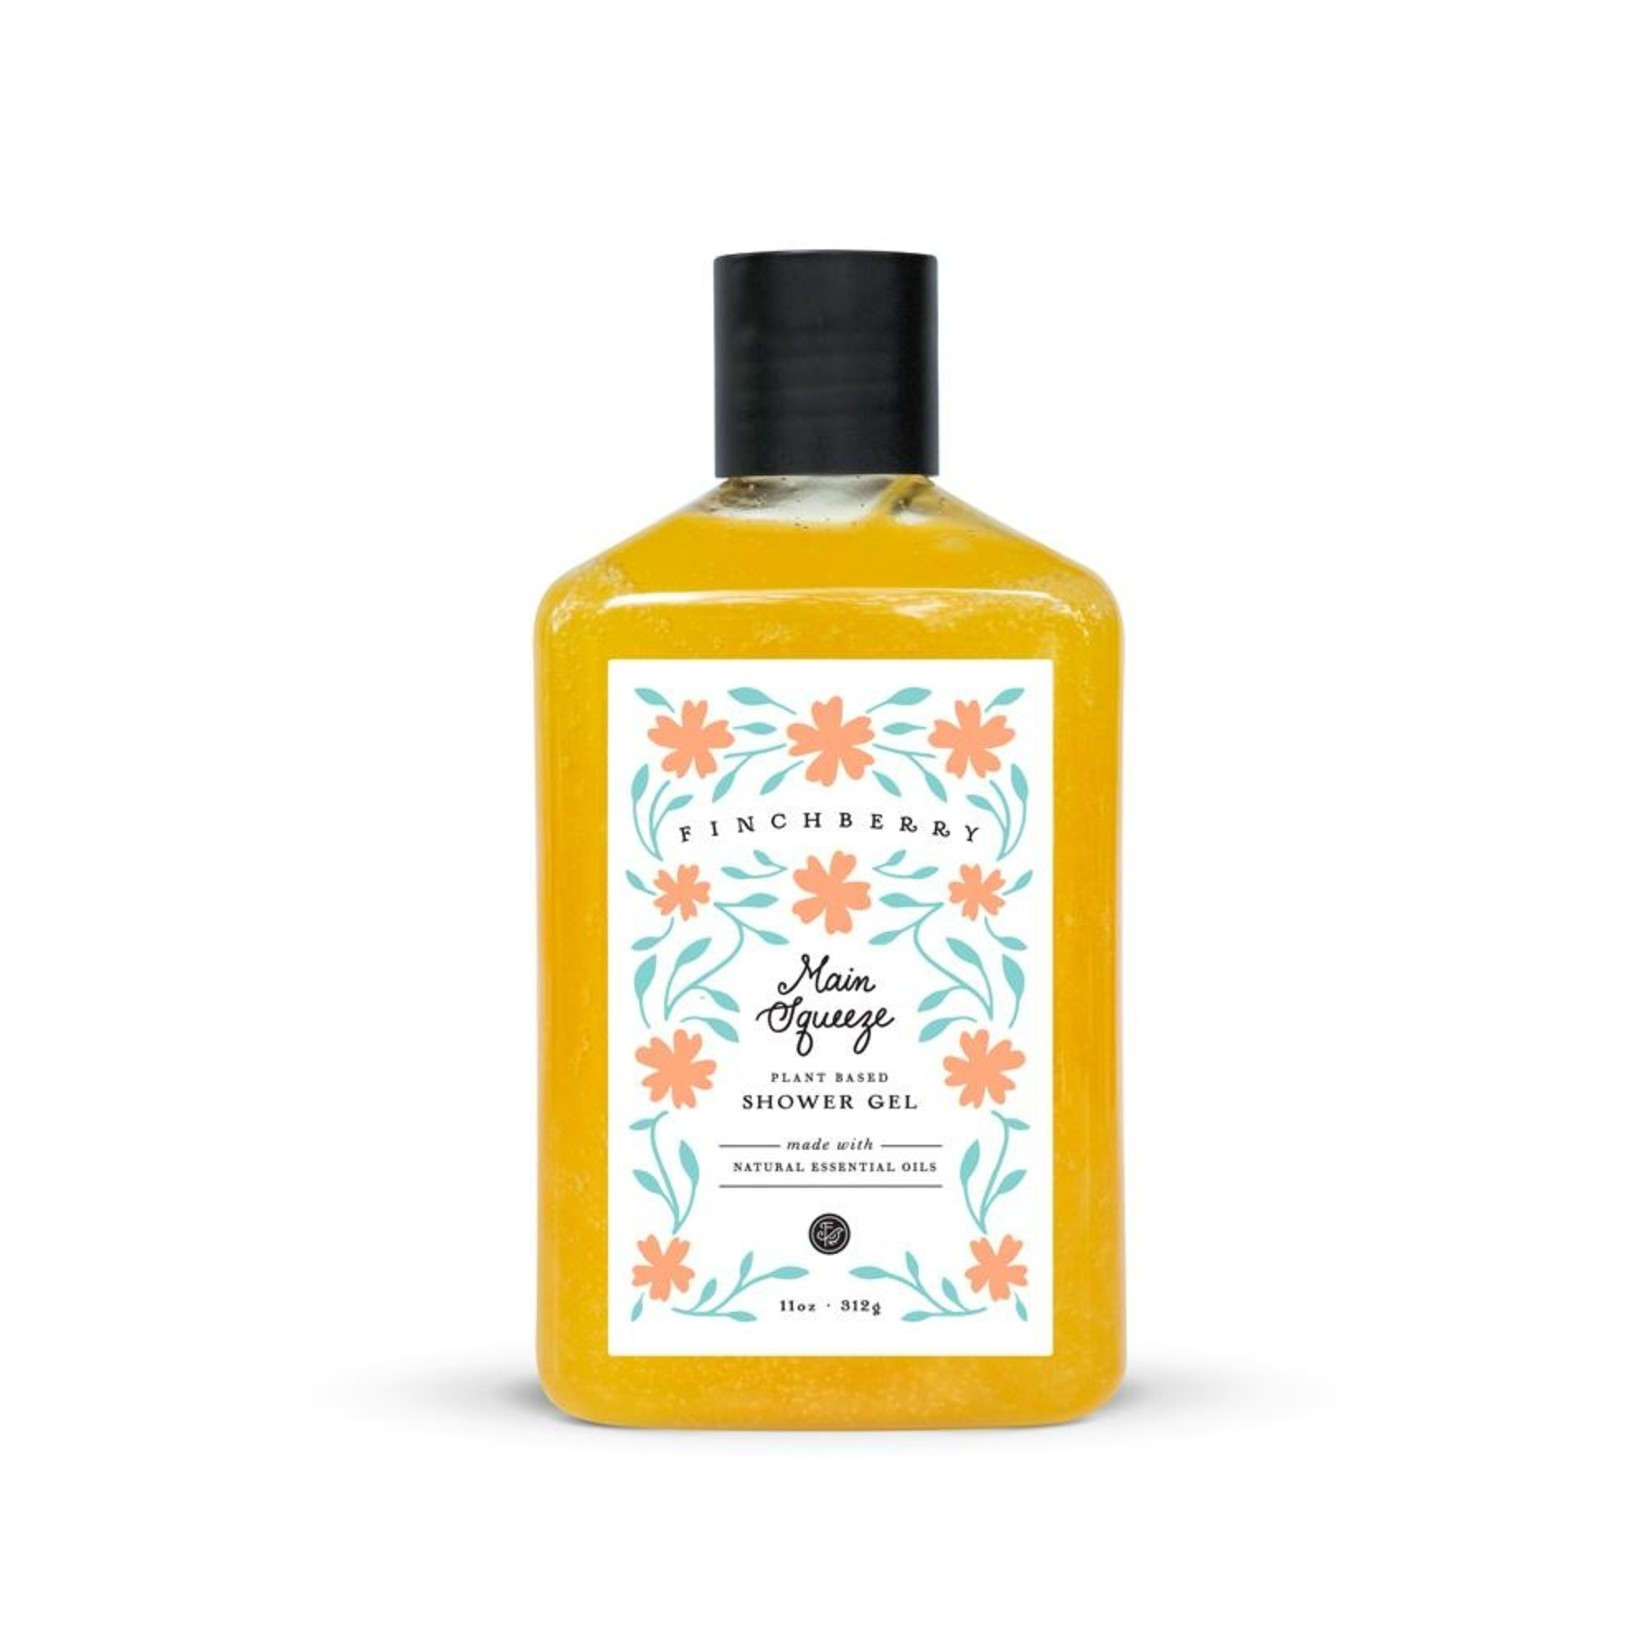 FinchBerry Soapery Main Squeeze Shower Gel